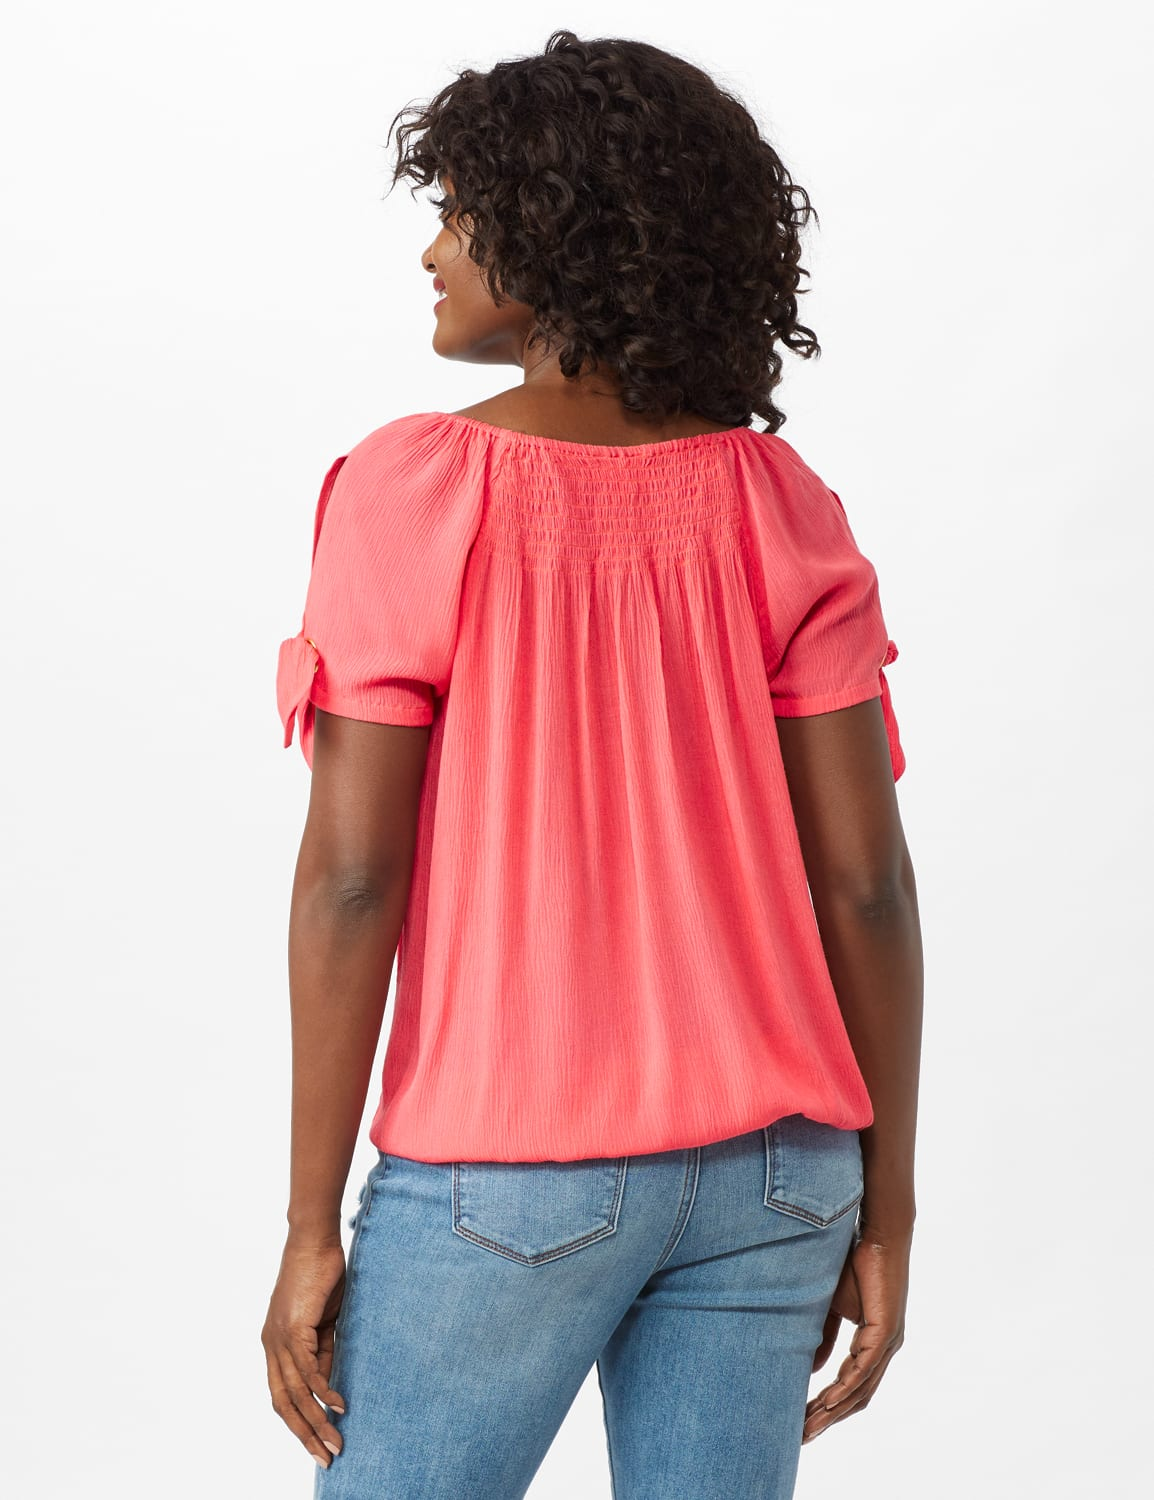 Smocked Peasant Grommet Tie Sleeve Top - Misses - Calypso Coral - Back